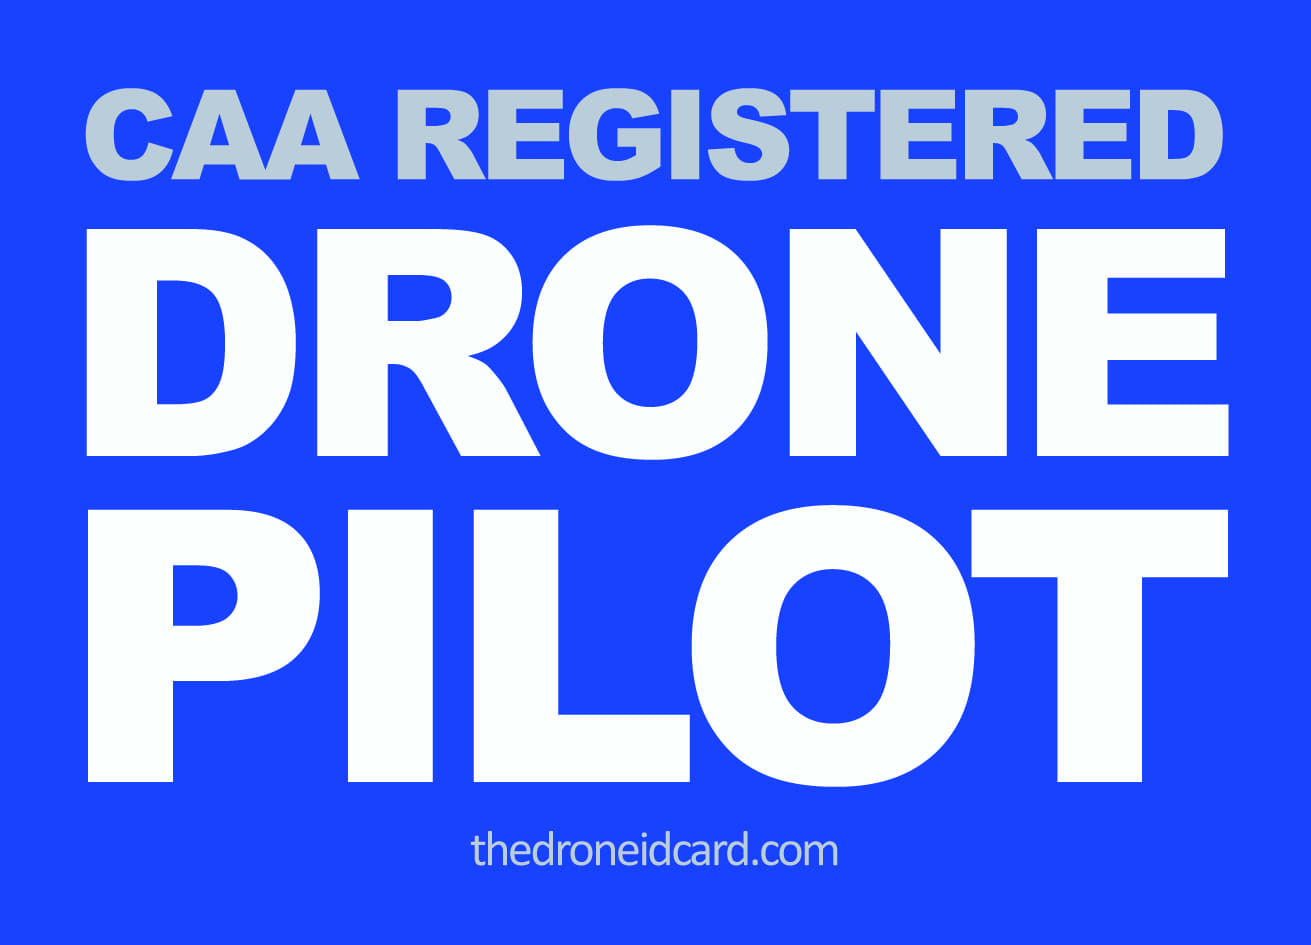 Registered CAA Drone Pilot Stickers